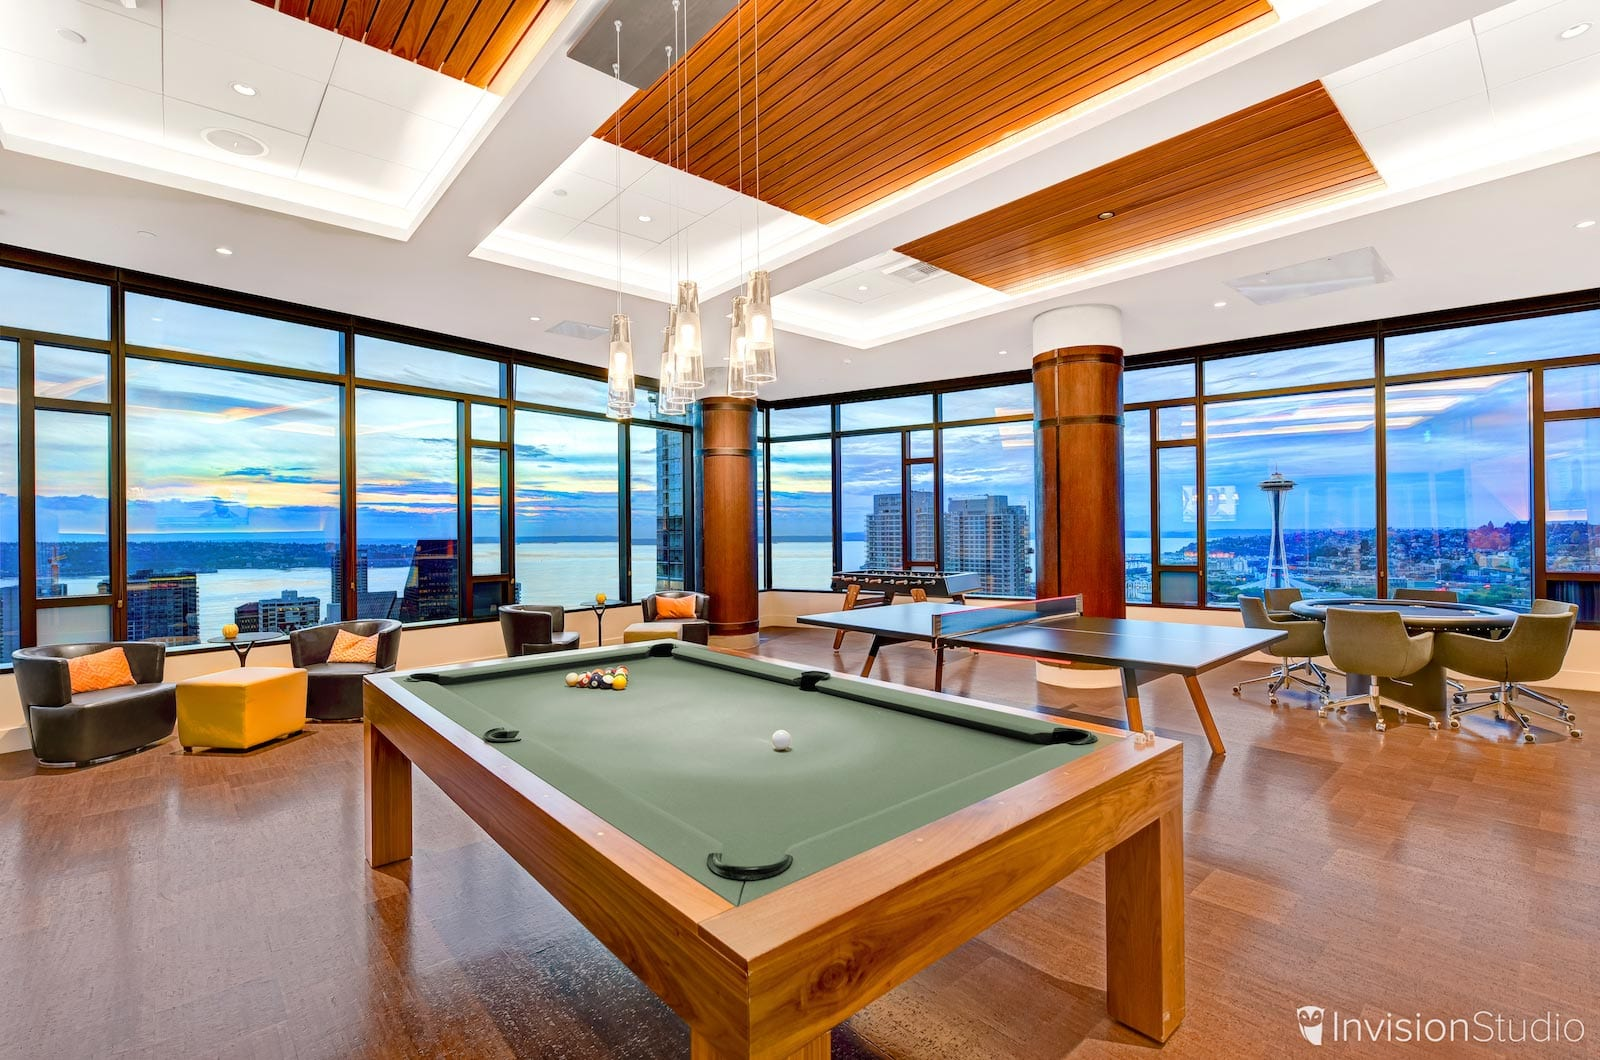 Game Room in Los Angeles Office Building   Matterport 3D Tours Los Angeles   Matterport 3D Visualization Los Angeles   Matterport Immersive Virtual Reality